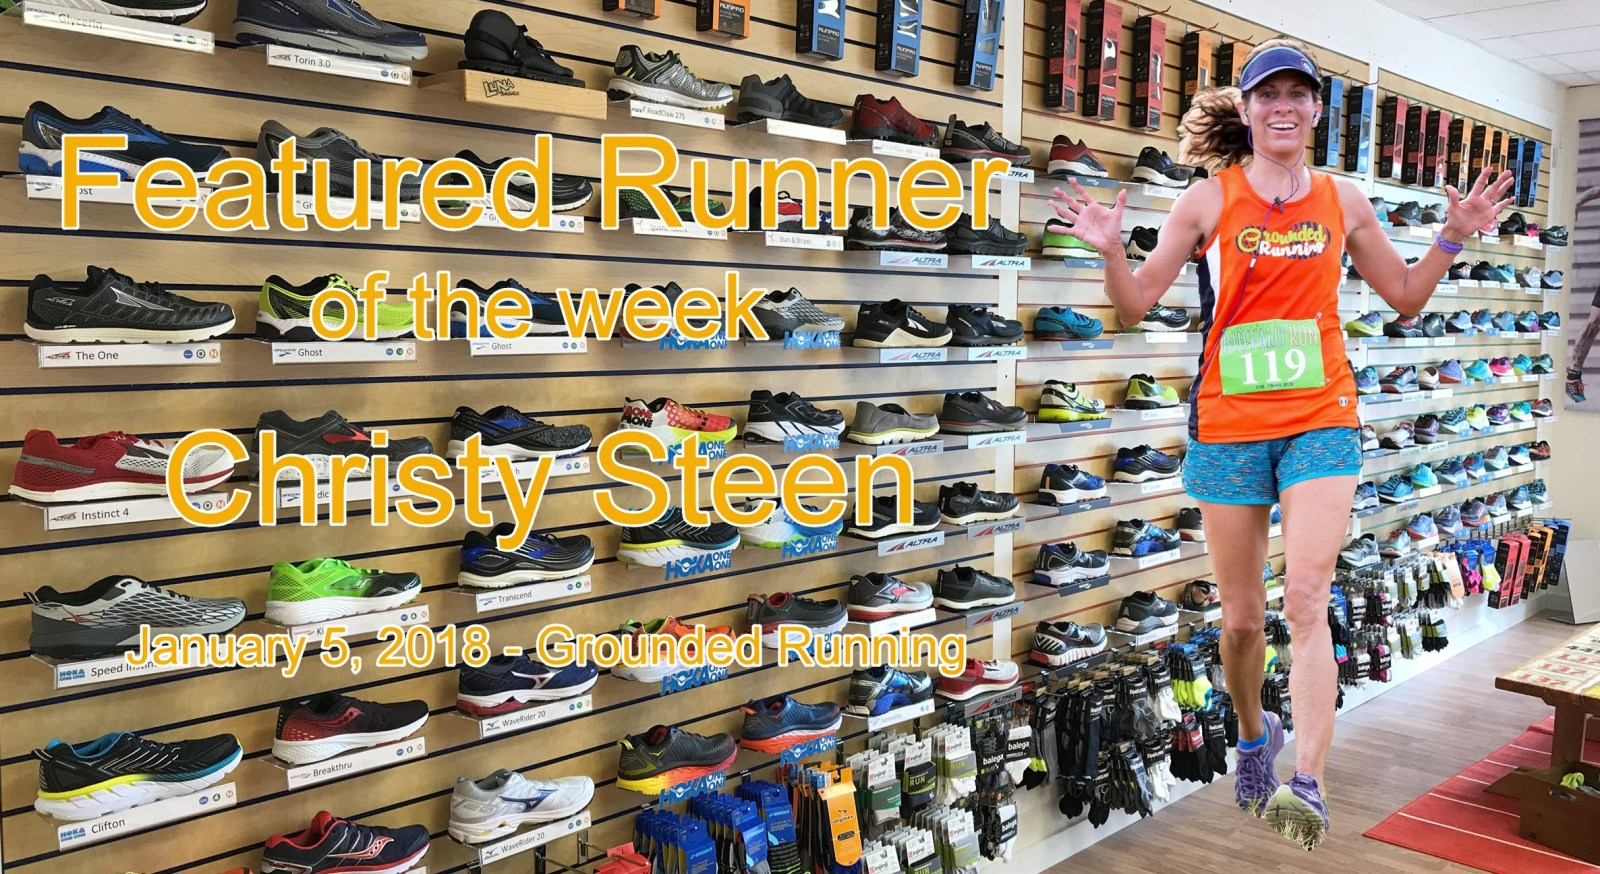 Christy Steen Featured Runner of the week